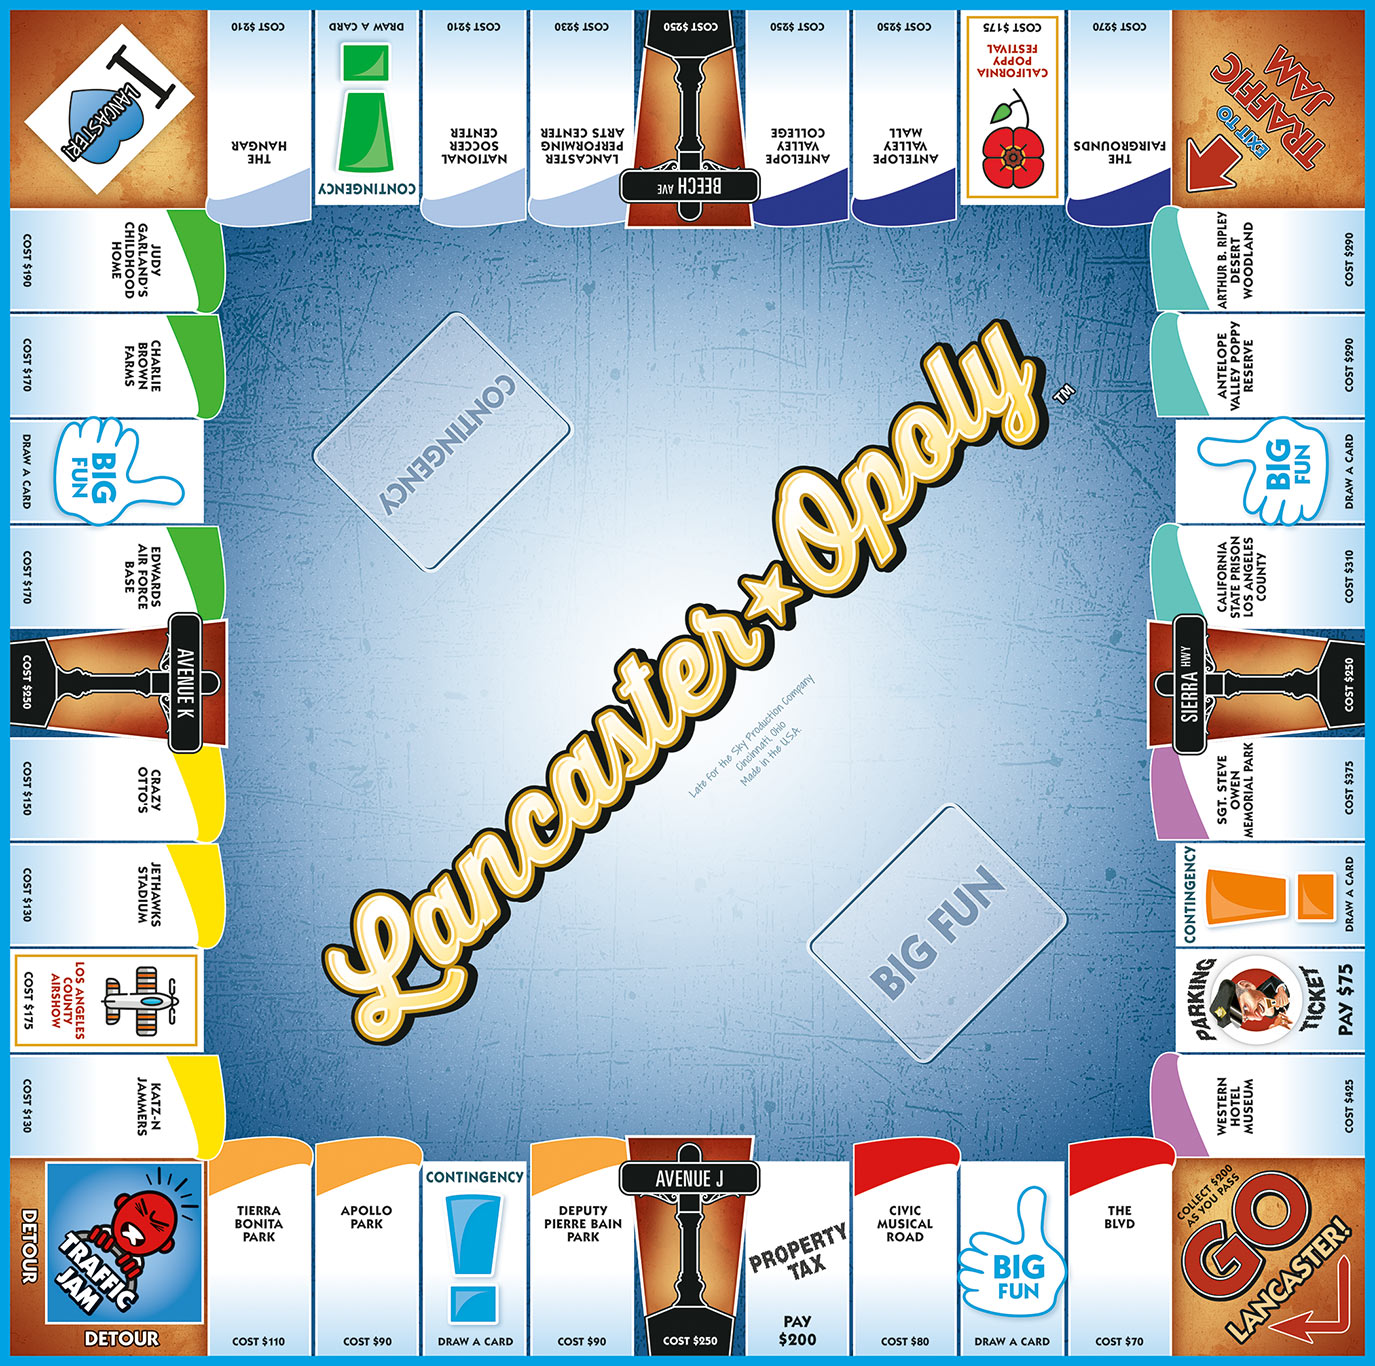 LANCASTER-OPOLY Board Game